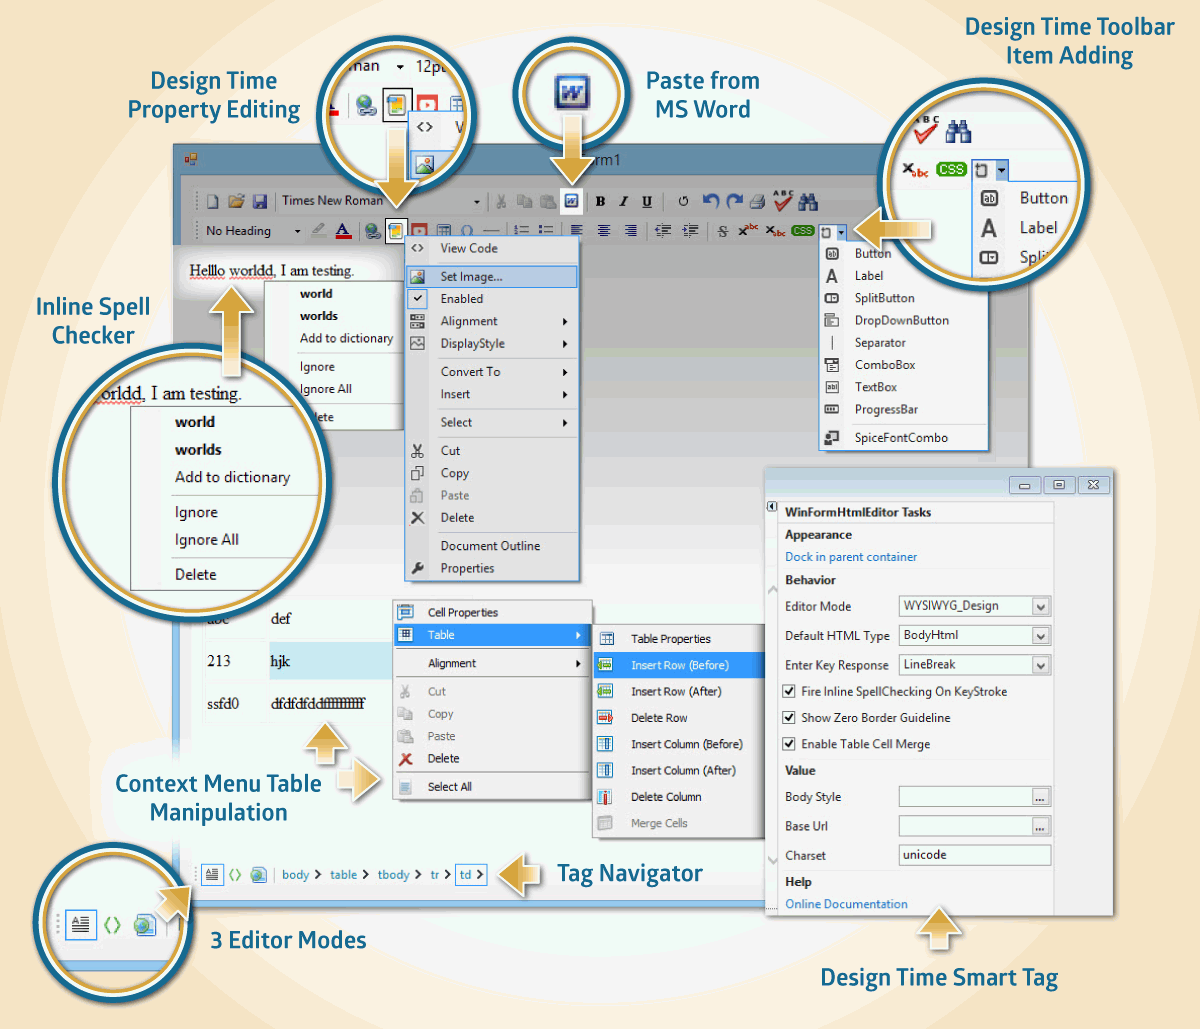 Spicelogic .NET WinForms HTML Editor Control 7.4.11.0 Direct Link Download